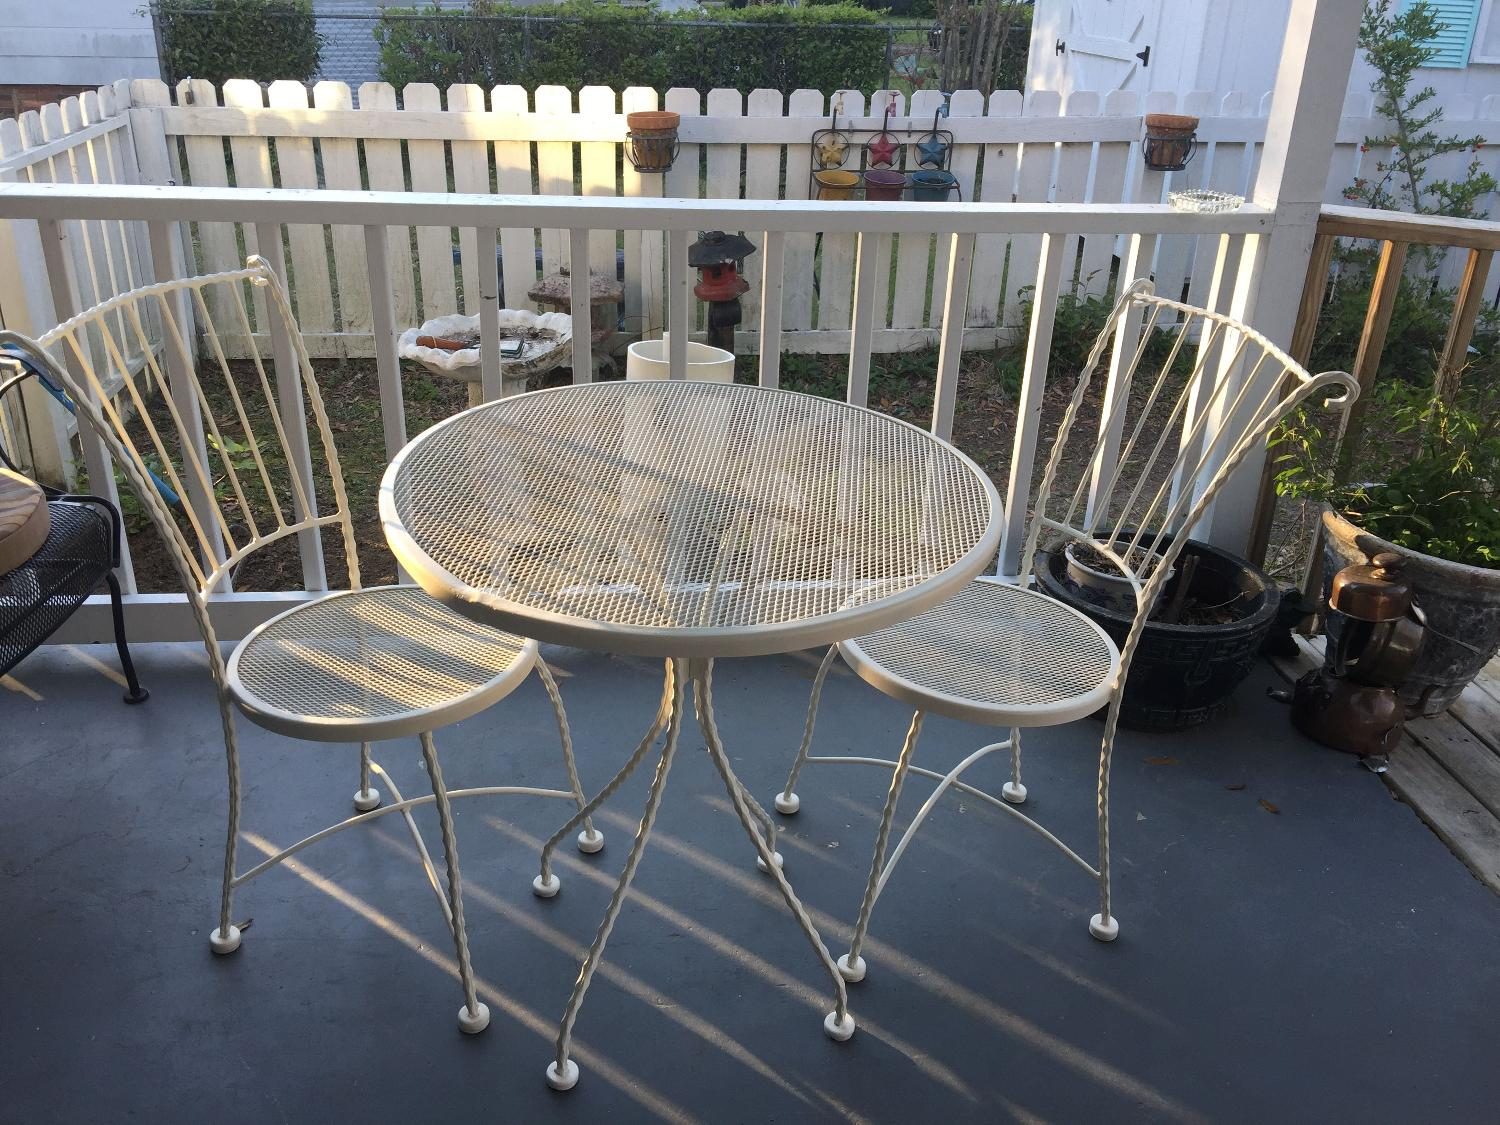 Find More Vintage Wrought Iron Table With Two Chairs 28 Wide 29 Tall Obo For Sale At